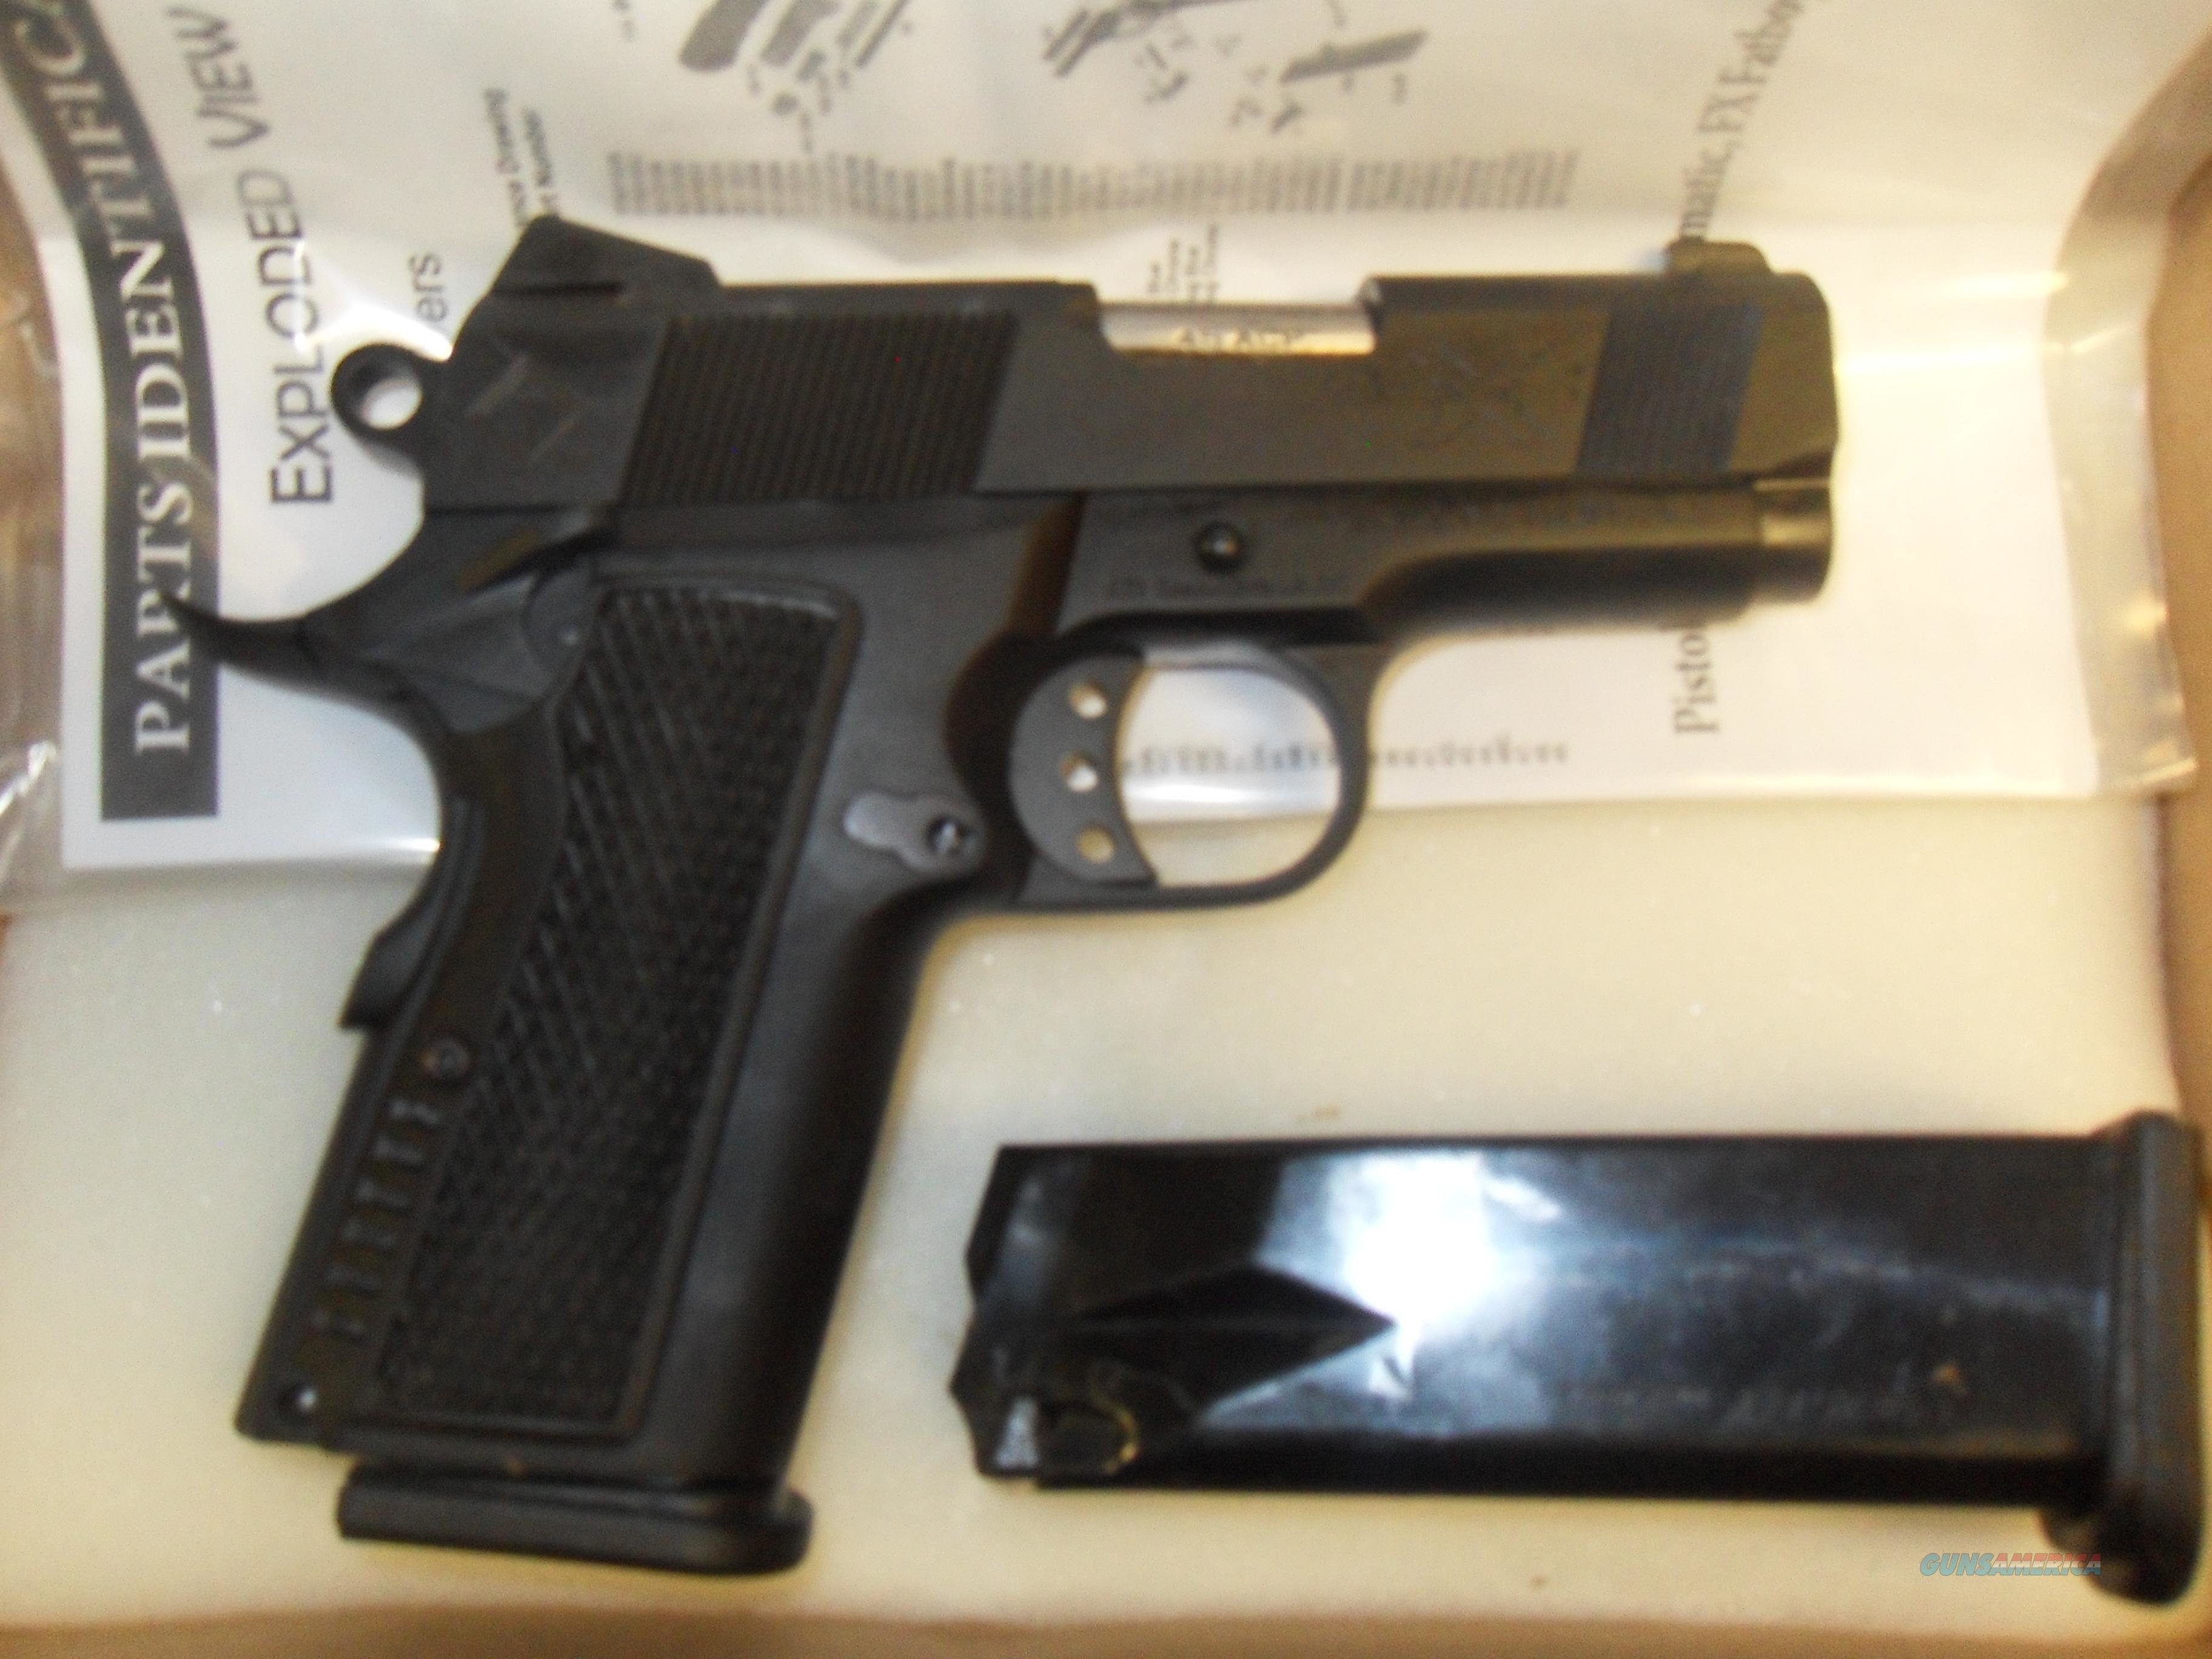 Ati 1911 Fx Fatboy Compact 45 Acp For Sale Mossberg 702 Exploded Diagram Guns Pistols American Tactical Imports